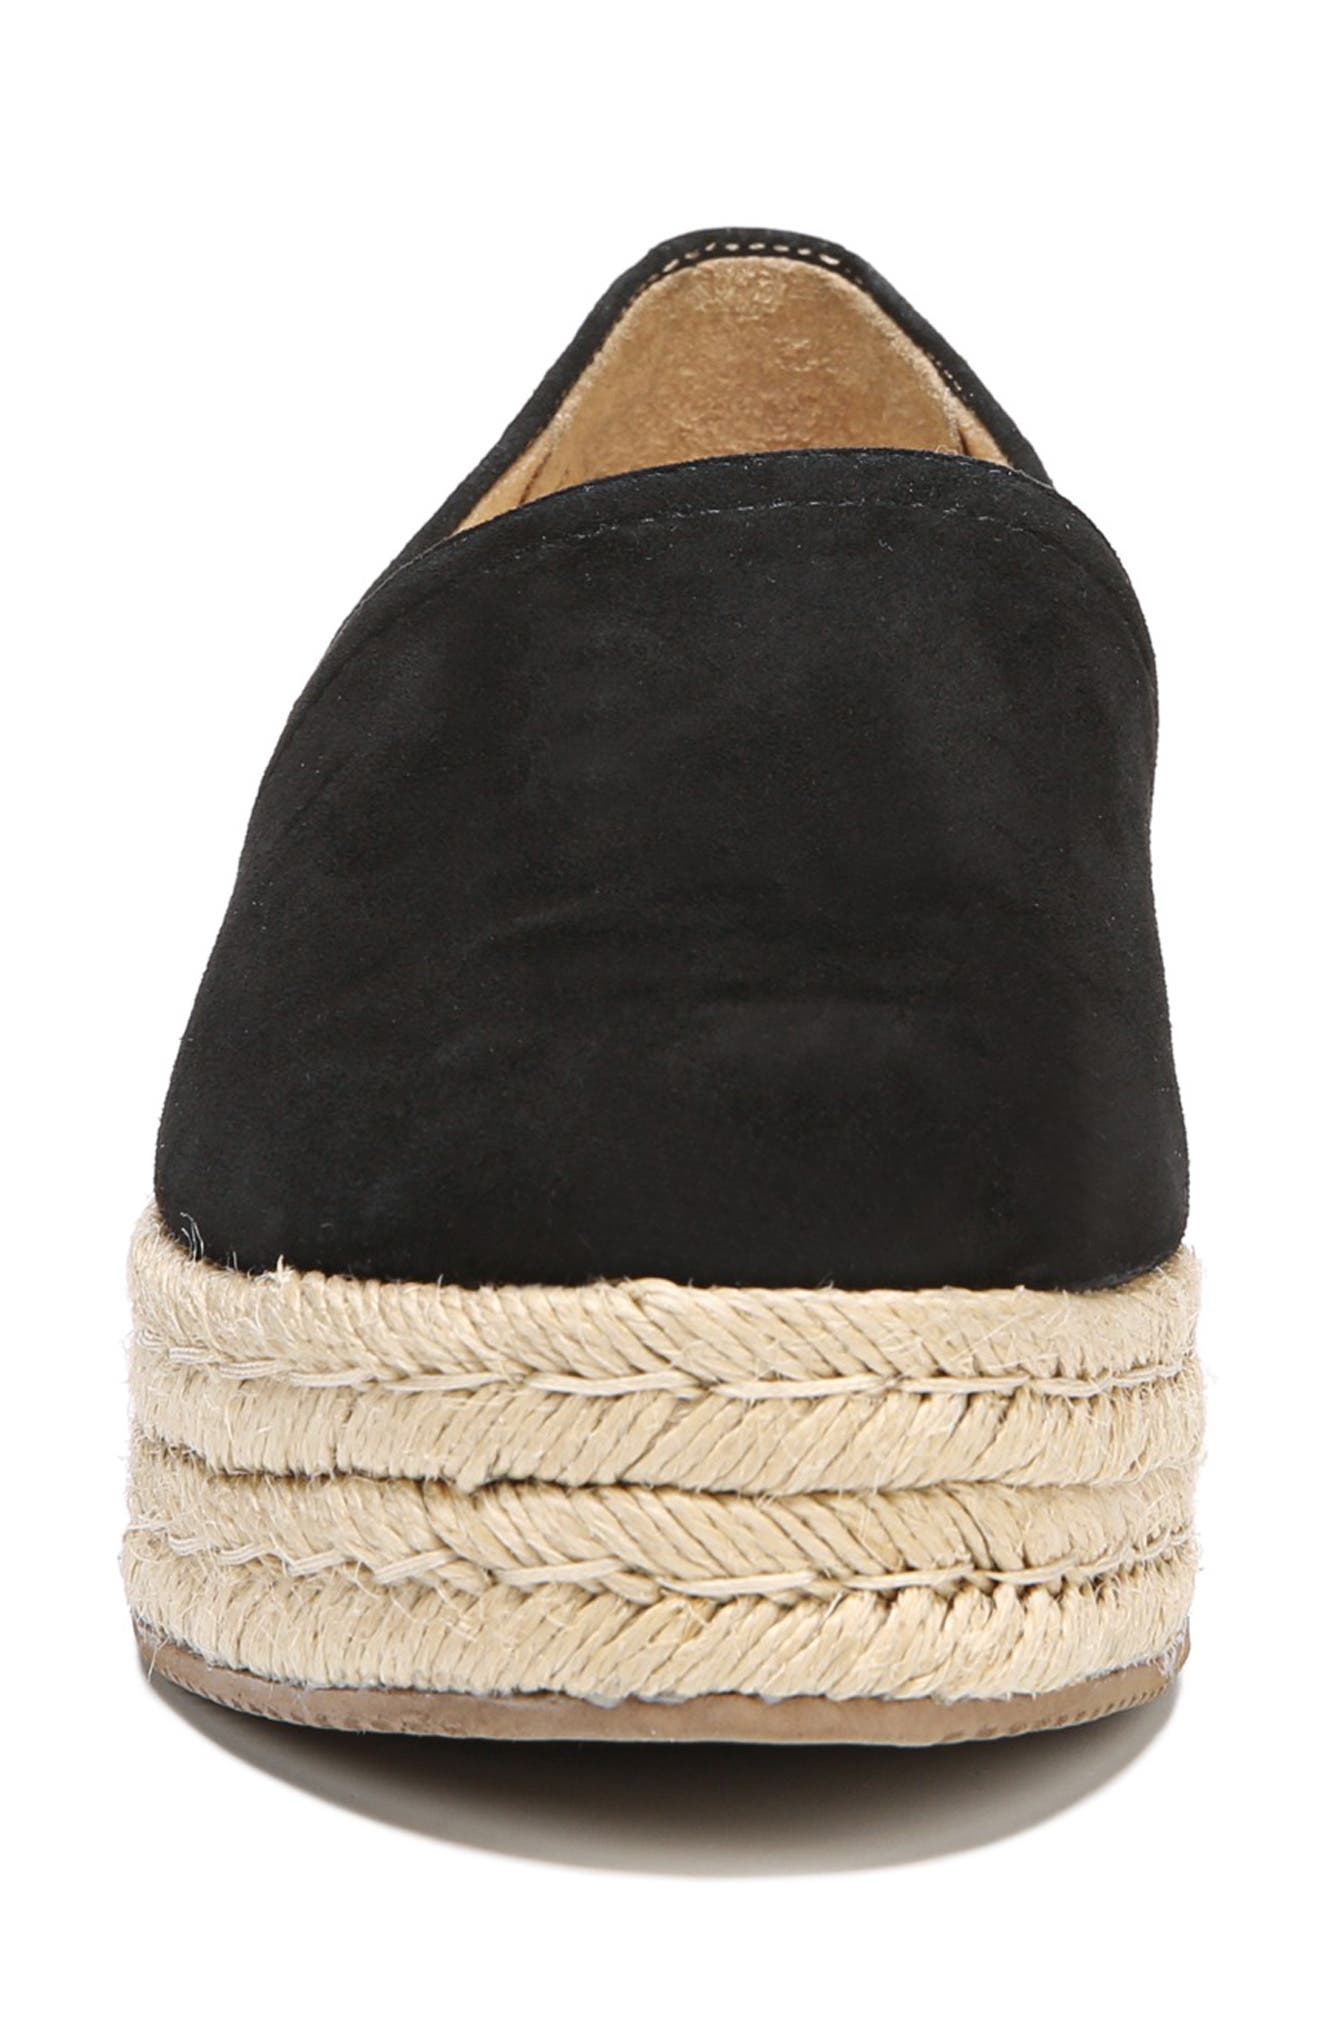 NATURALIZER,                             Thea III Espadrille Slip-On,                             Alternate thumbnail 4, color,                             001